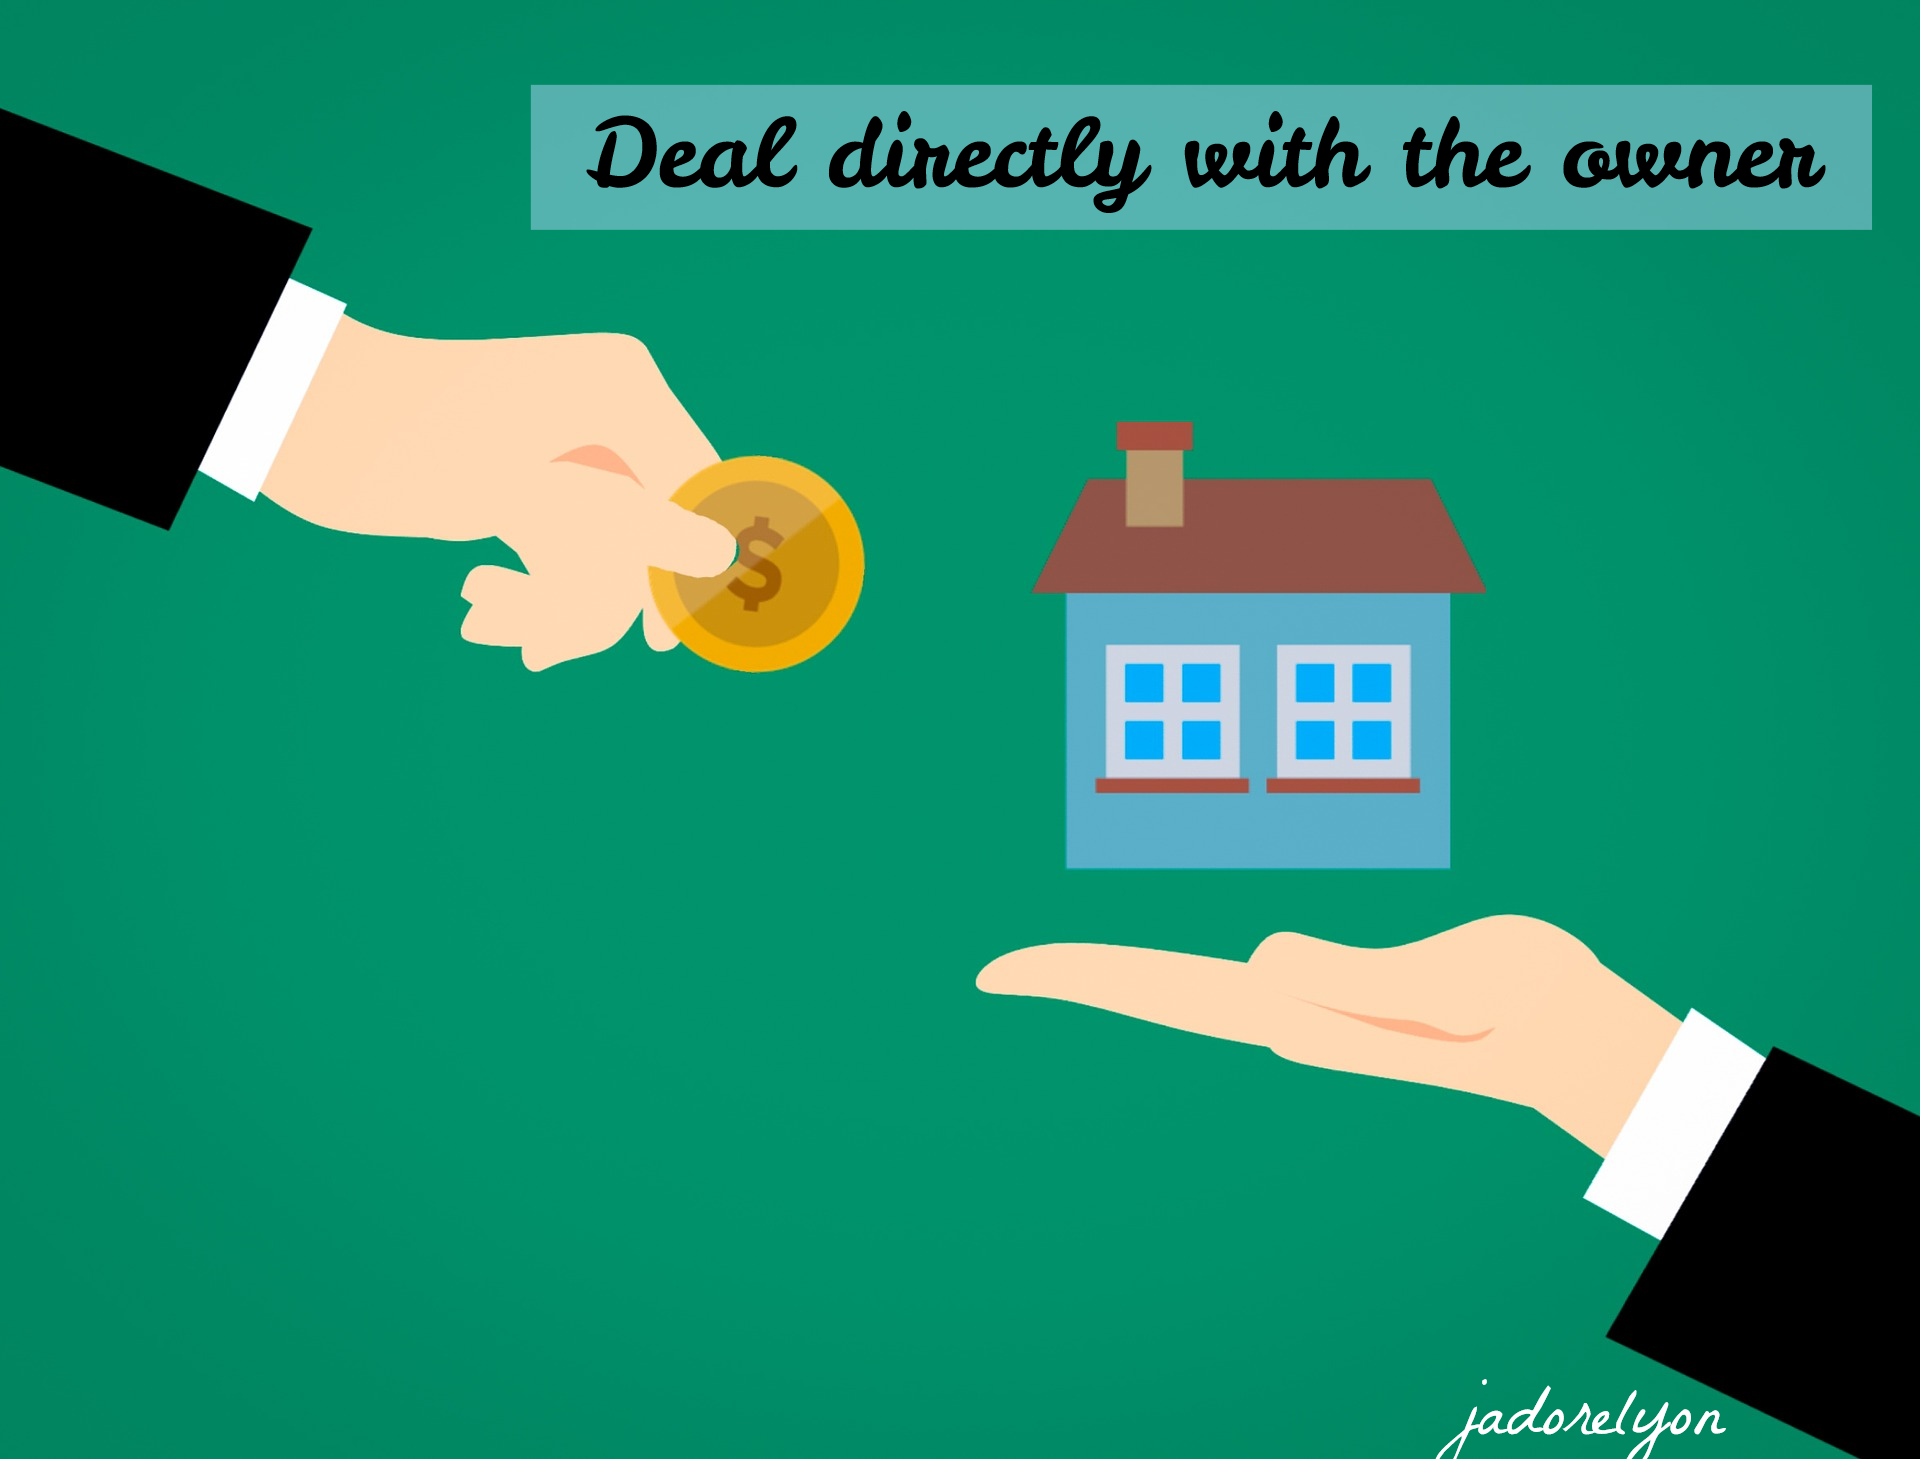 Deal directly with the owner